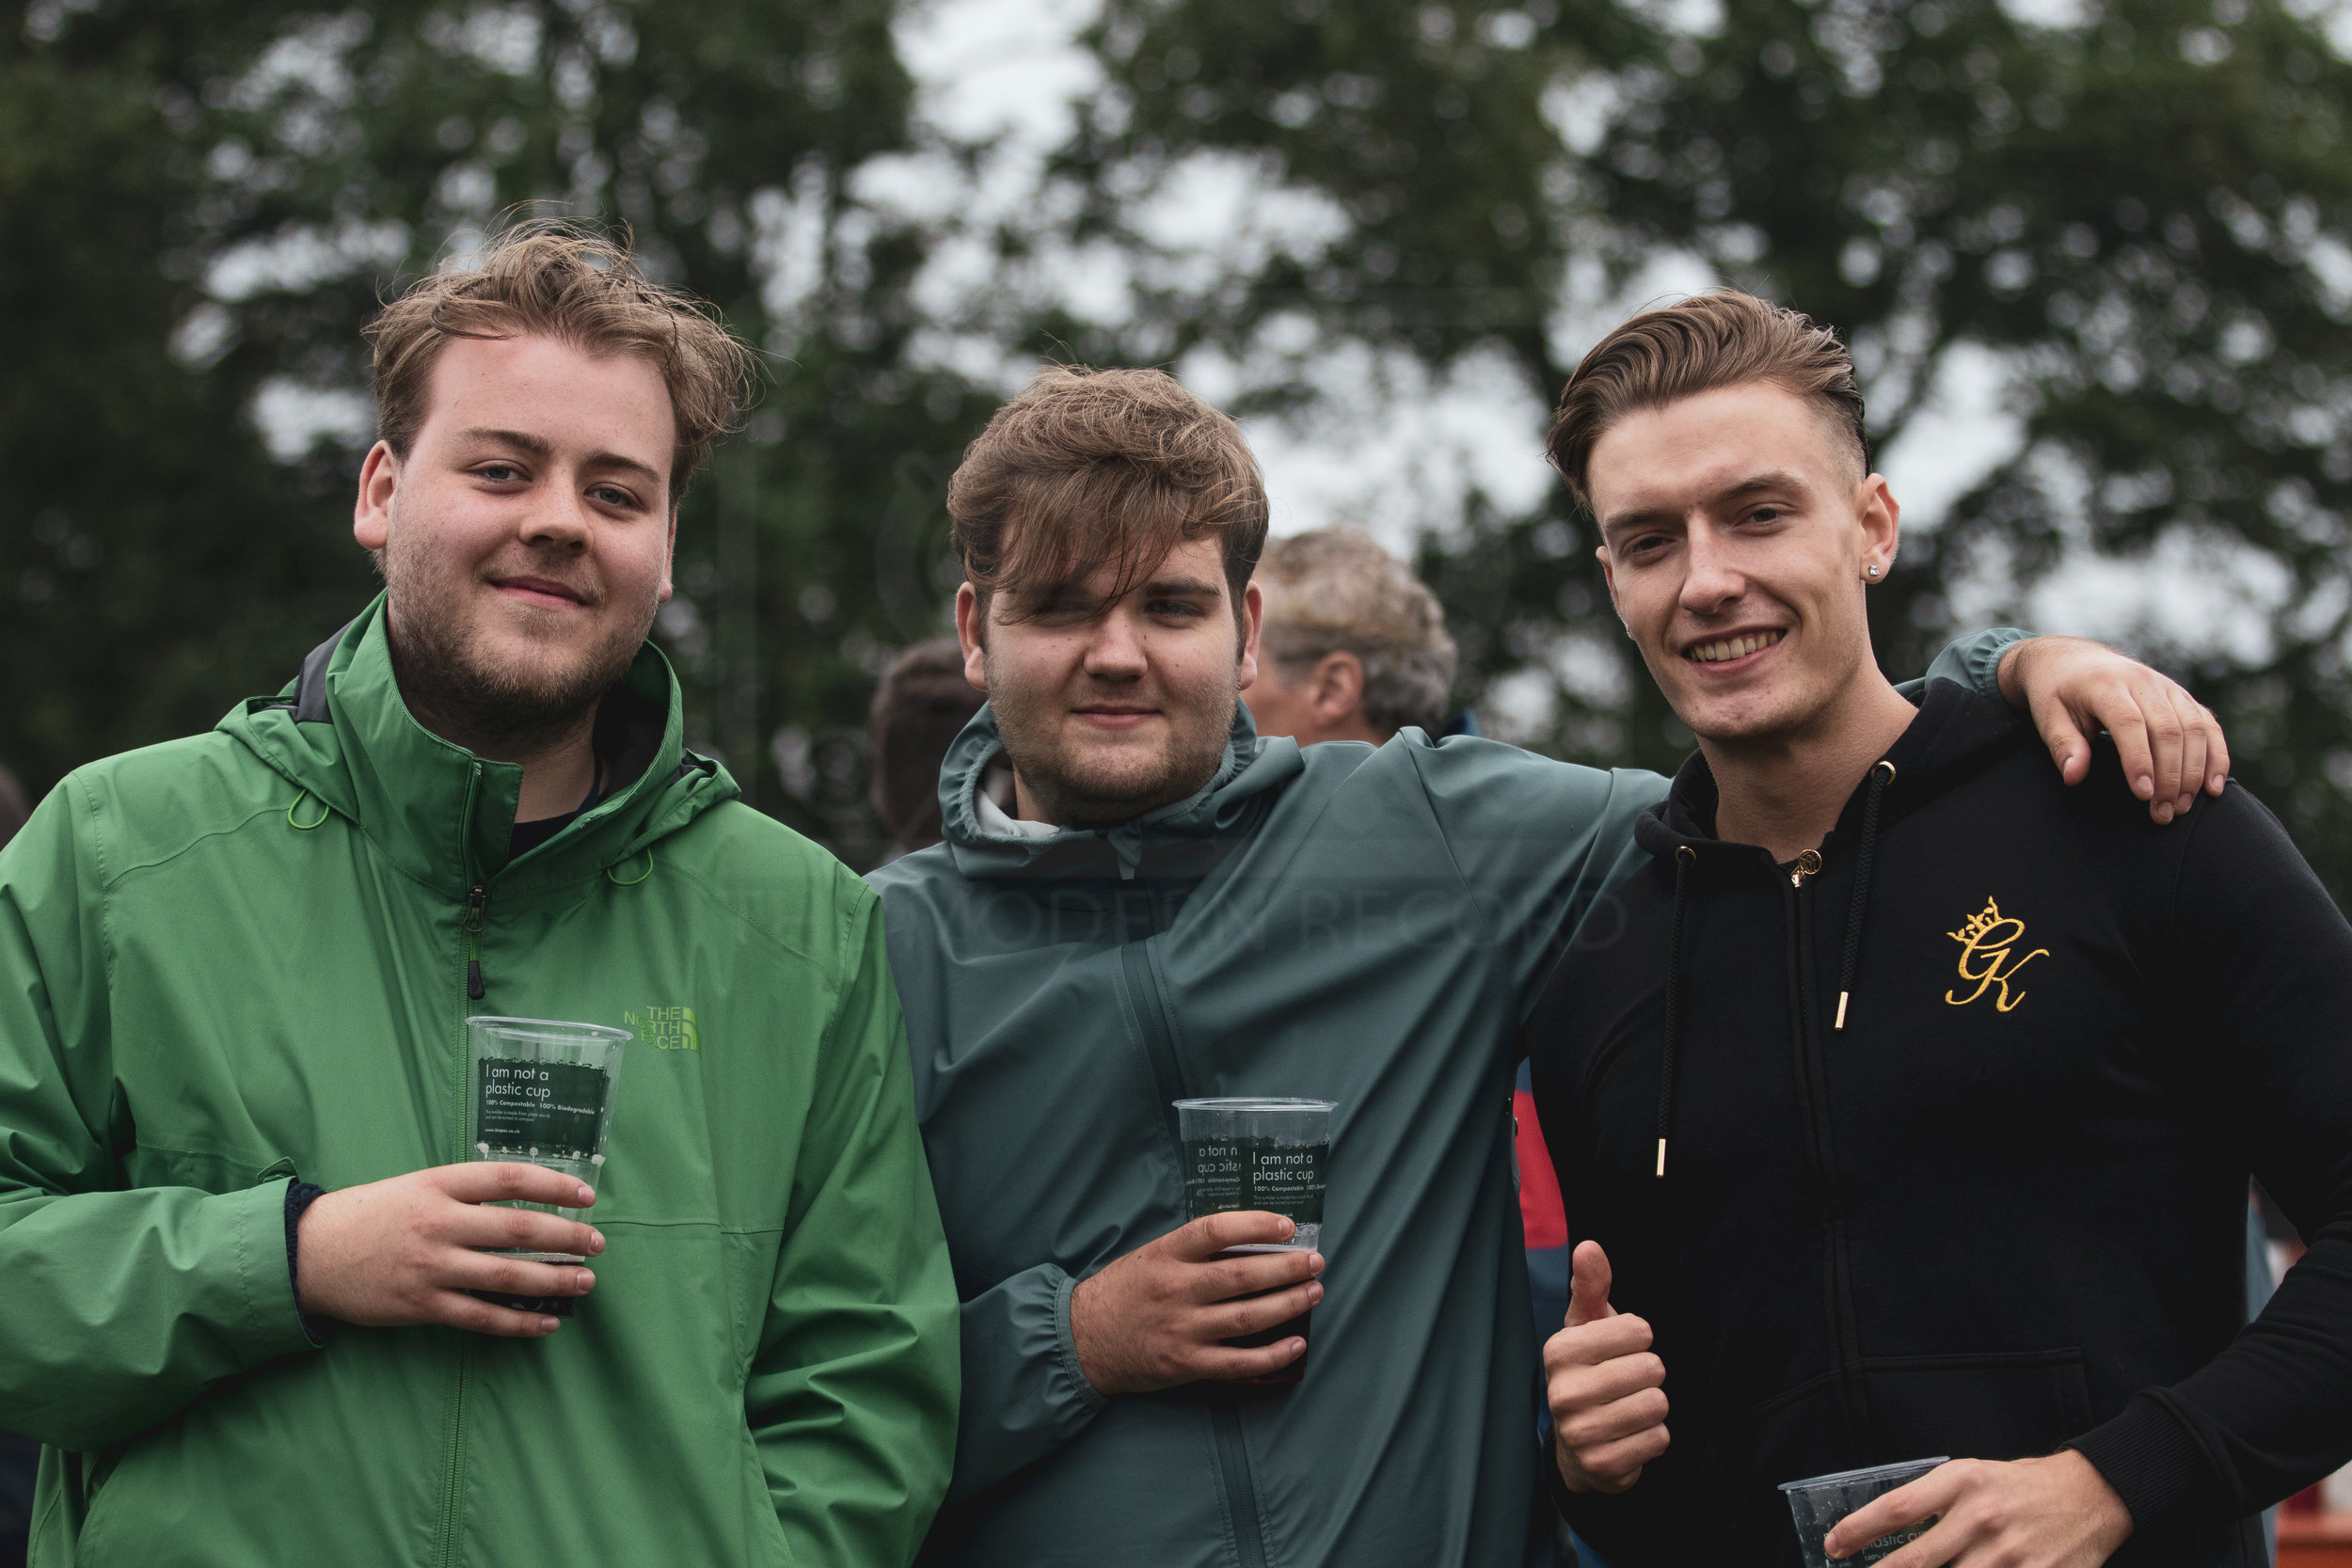 FESTIVAL GOERS AT PARTY AT THE PALACE 2018 - 12.11.2018  PICTURE BY: KENDALL WILSON PHOTOGRAPHY